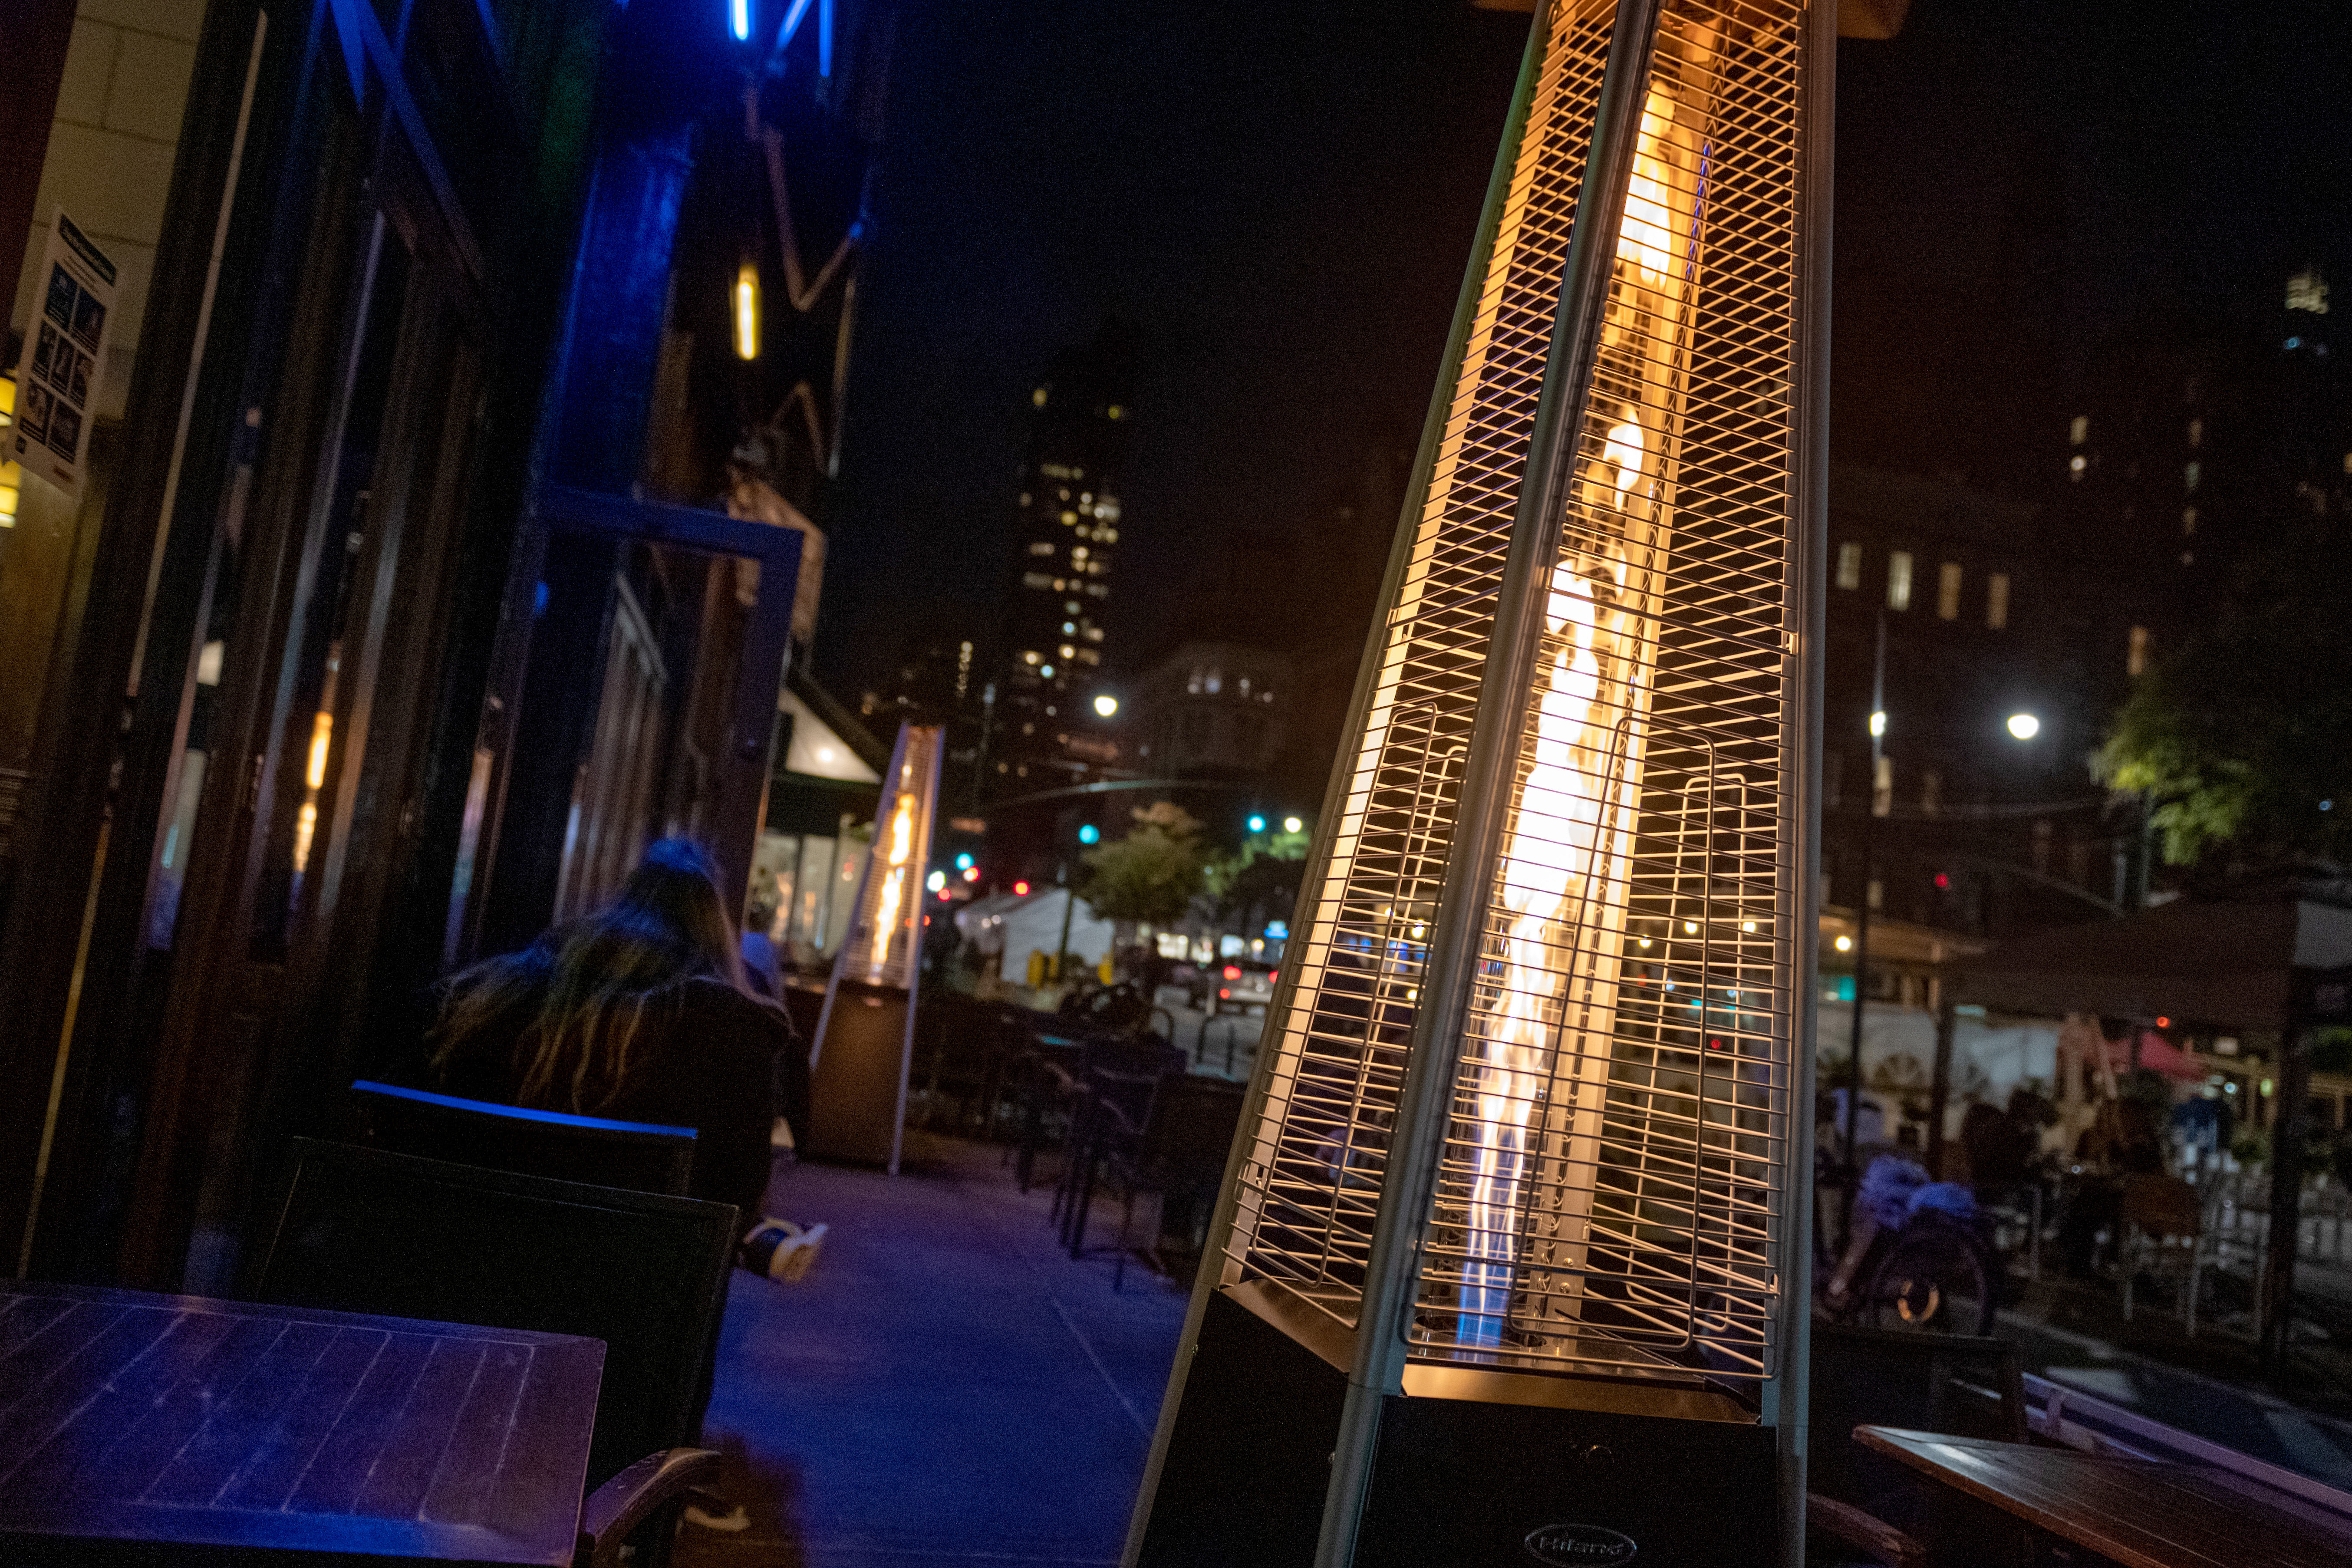 A gas heater is placed near outdoor tables at Tenzan restaurant on October 18, 2020 in New York City.